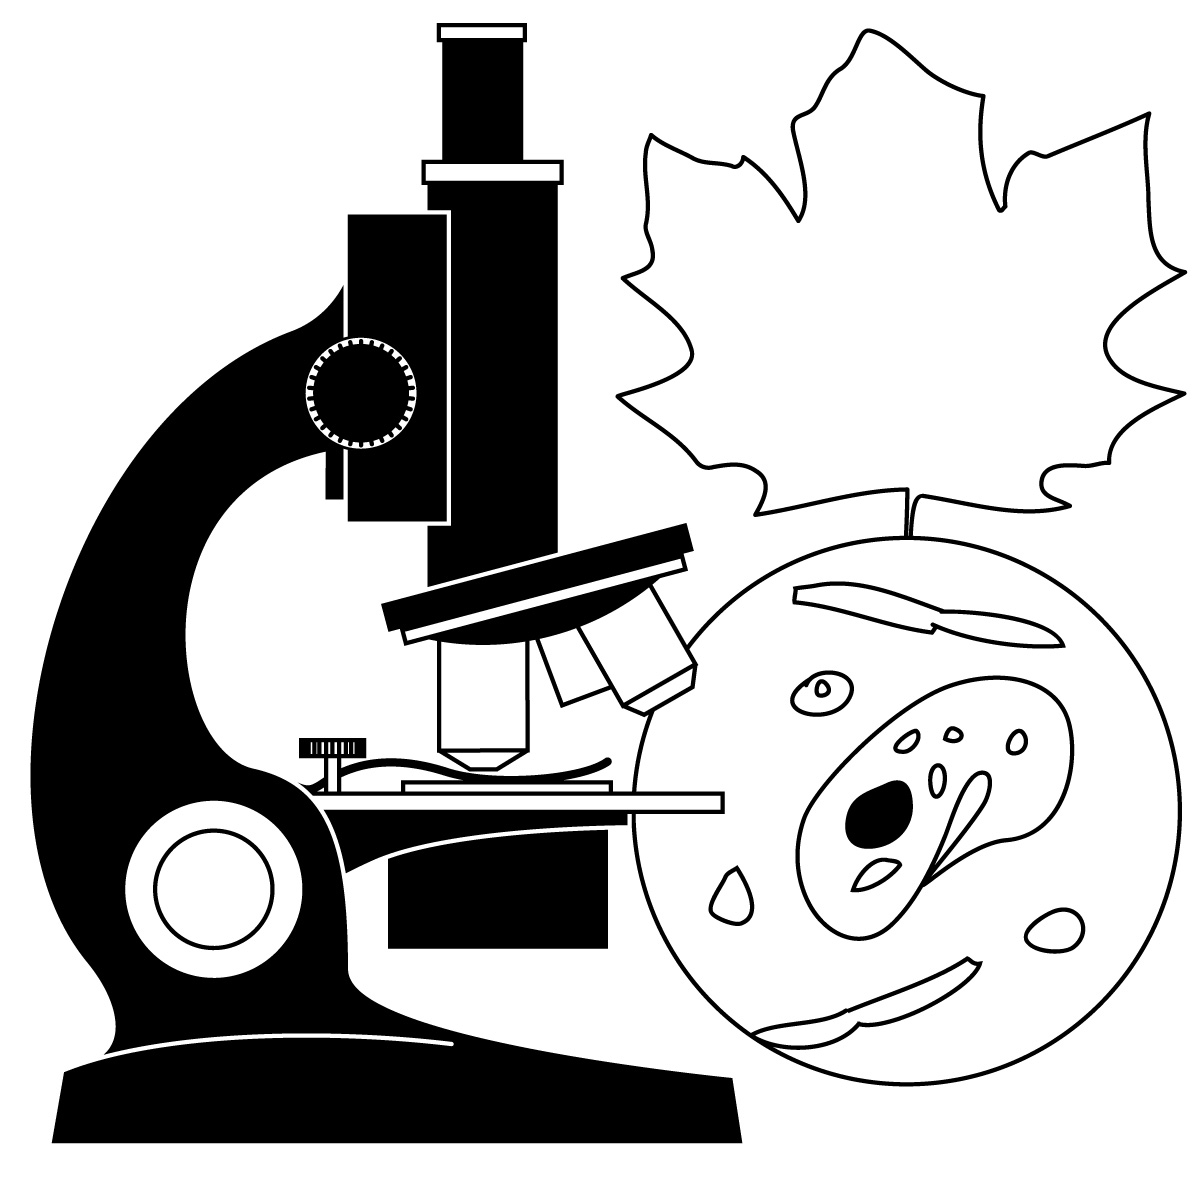 Biology clipart black and white. Free download clip art